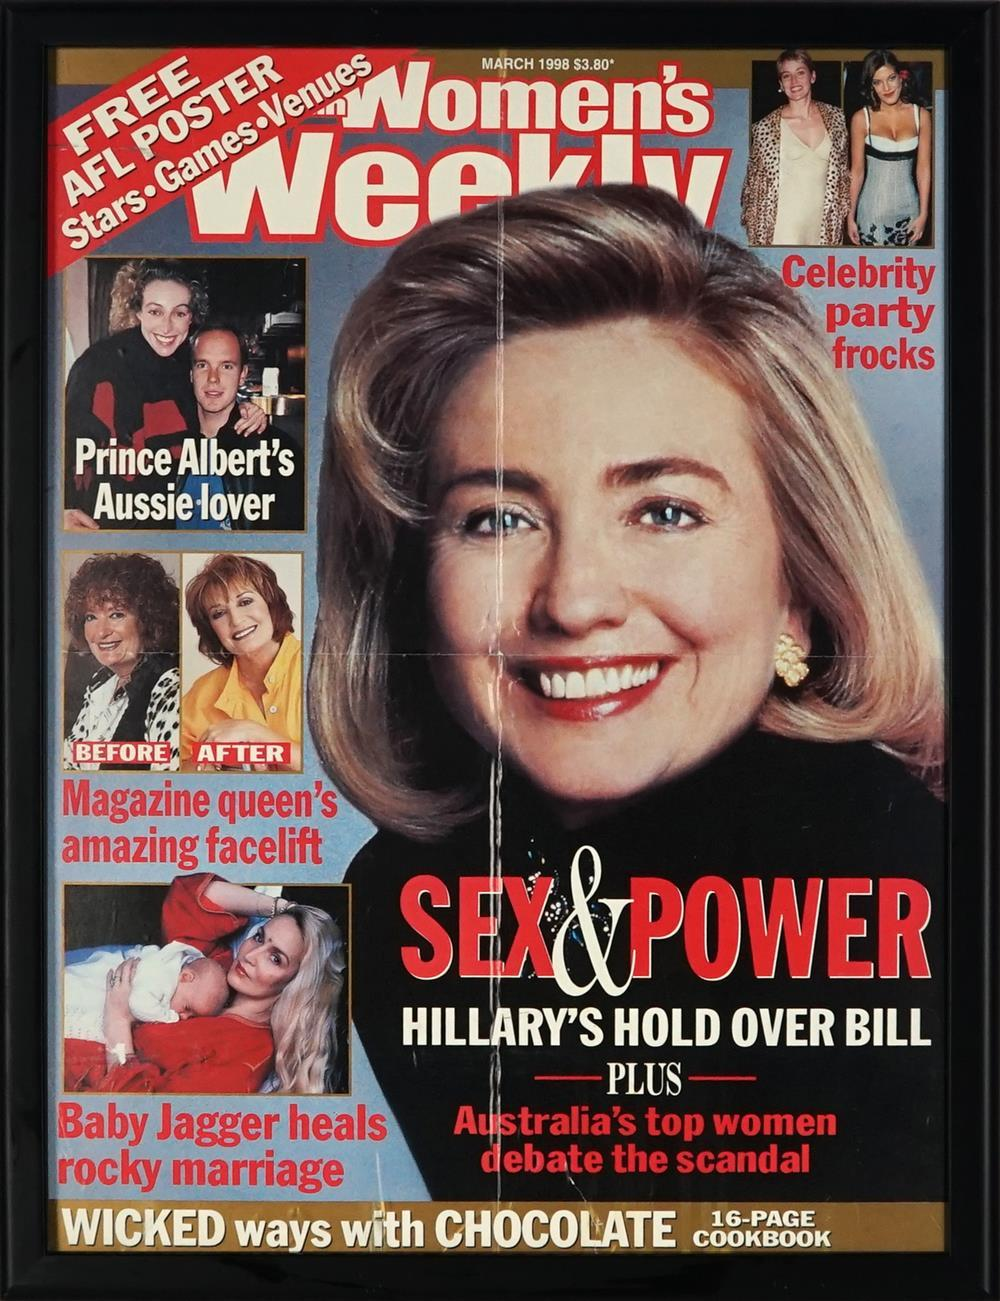 (3 WORKS) Women's Weekly March 1998, Sex and Power, Hillary's Hold over Bill...print, 54 x 40.5cm; Phantasm Comes Again, daybill pos...